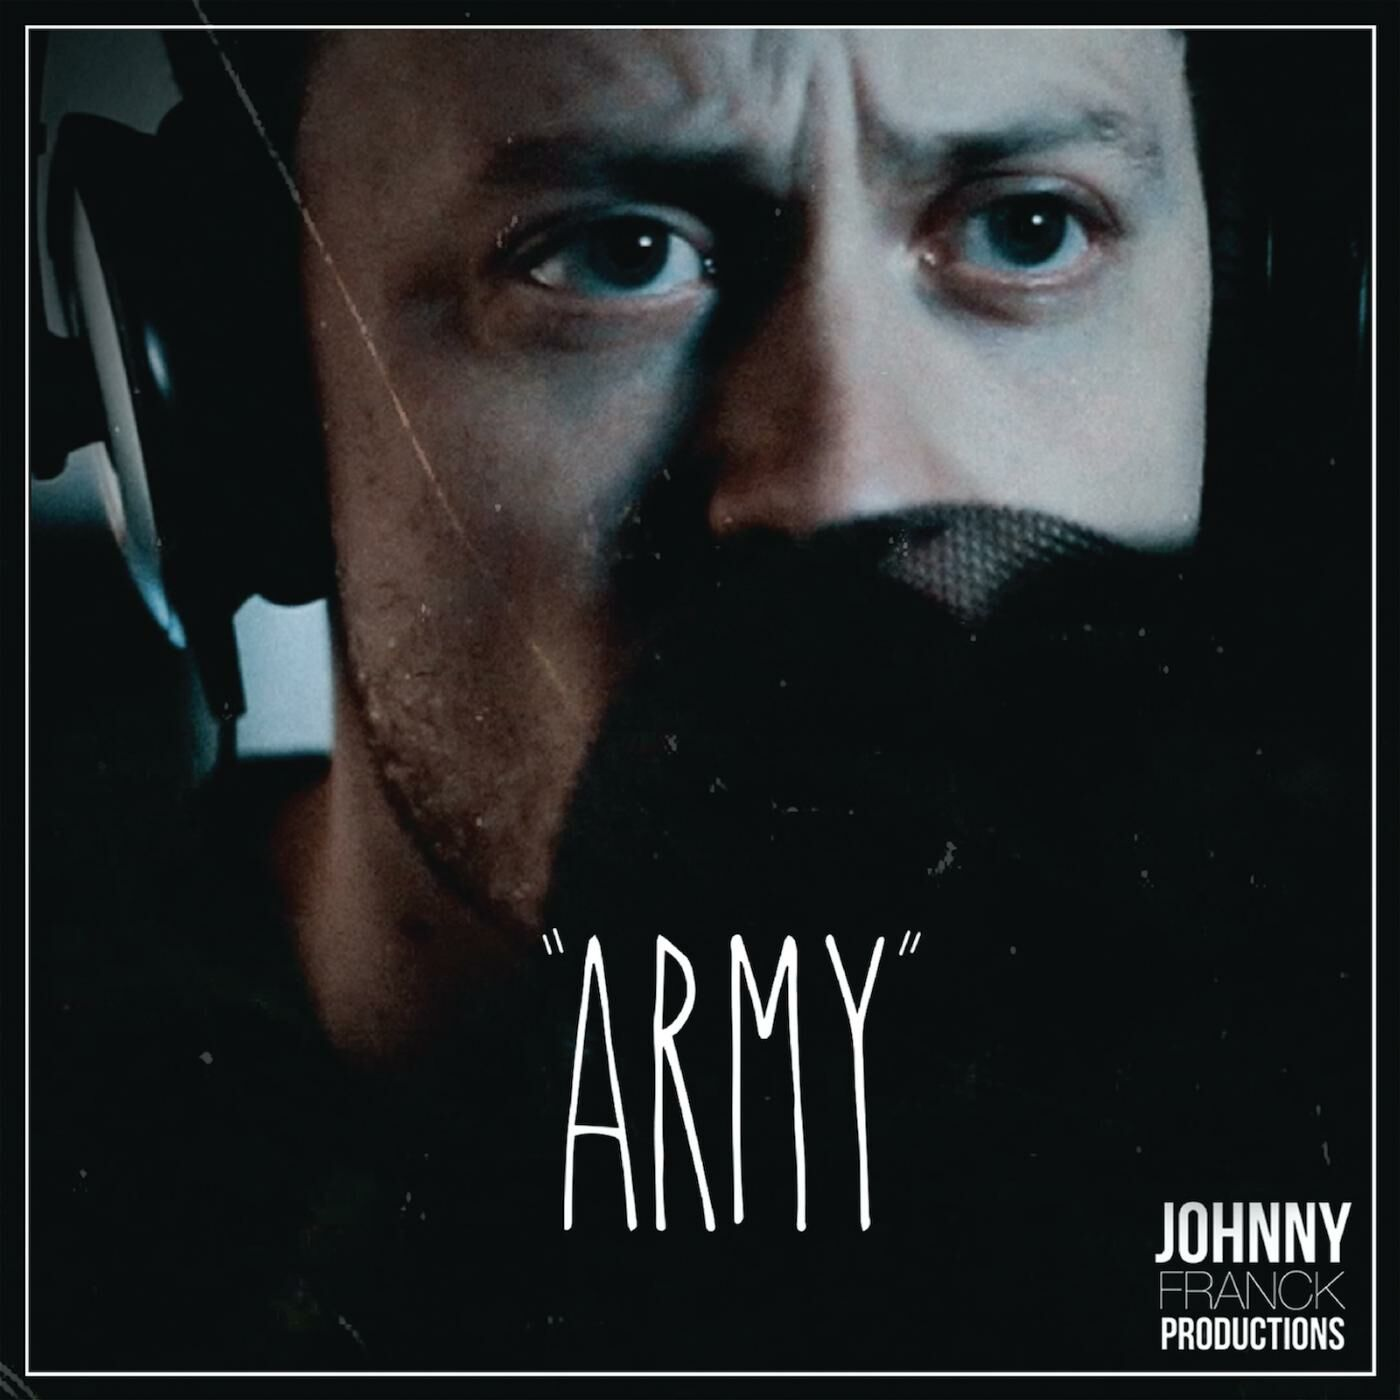 Johnny Franck - Army [single] (2016)